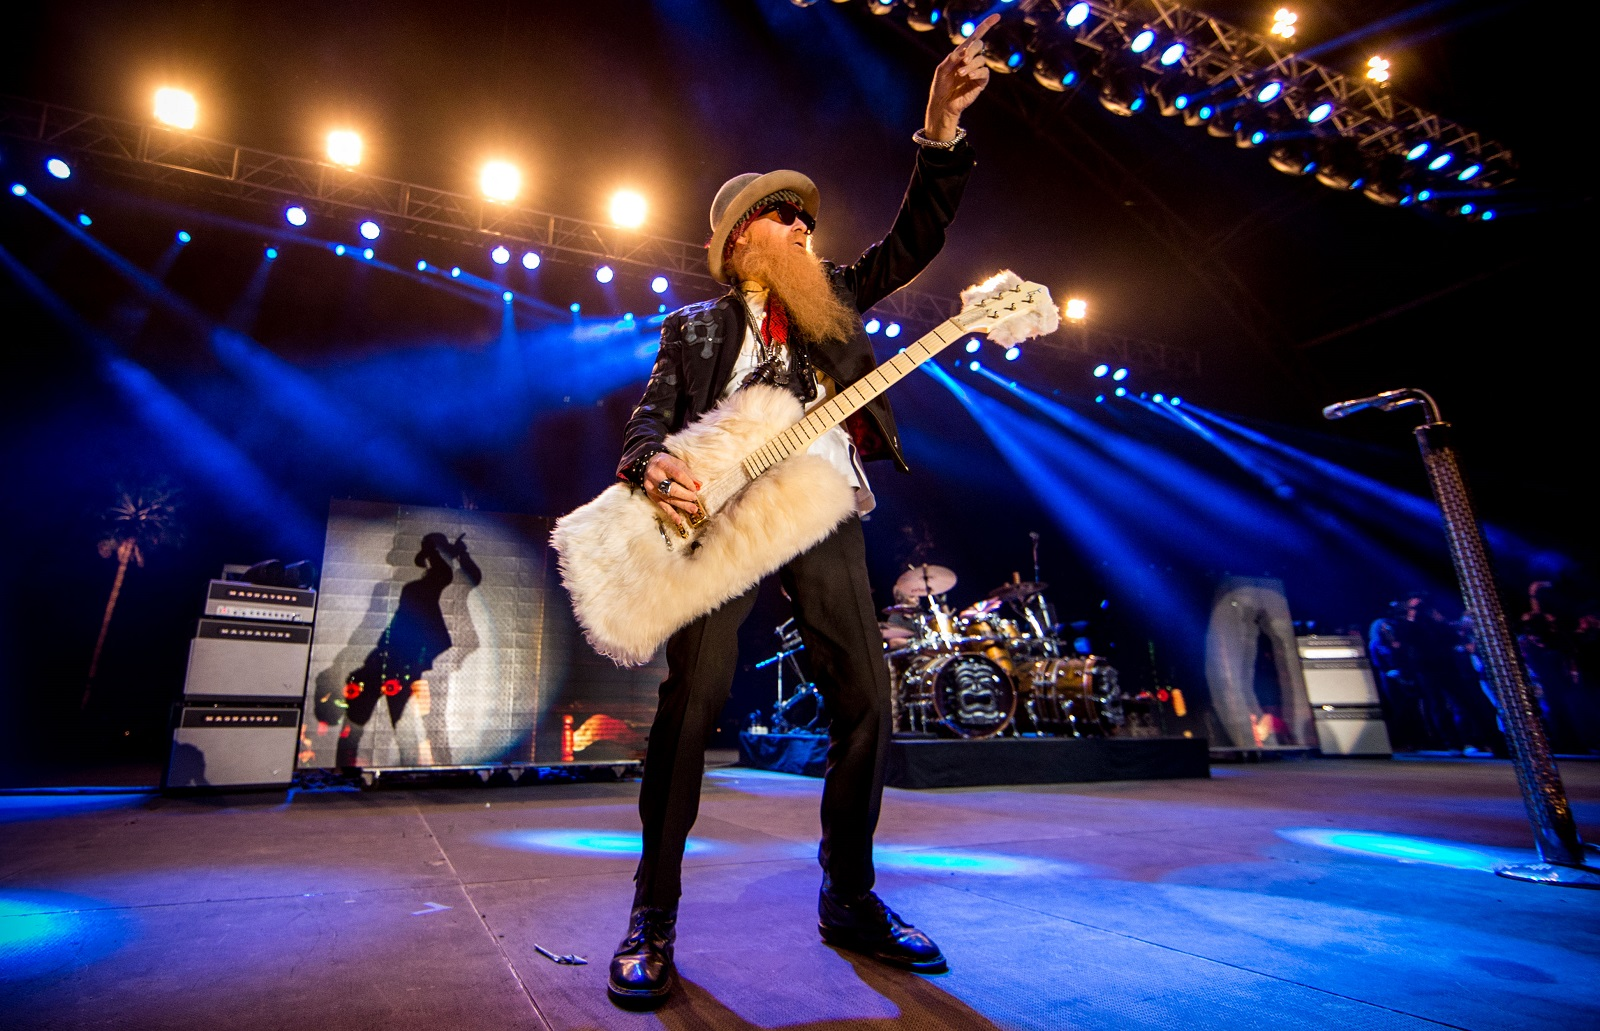 ZZ Top will perform with Greg Allman at Artpark this summer. Pictured is Billy Gibbons of ZZ Top. (Getty Images)